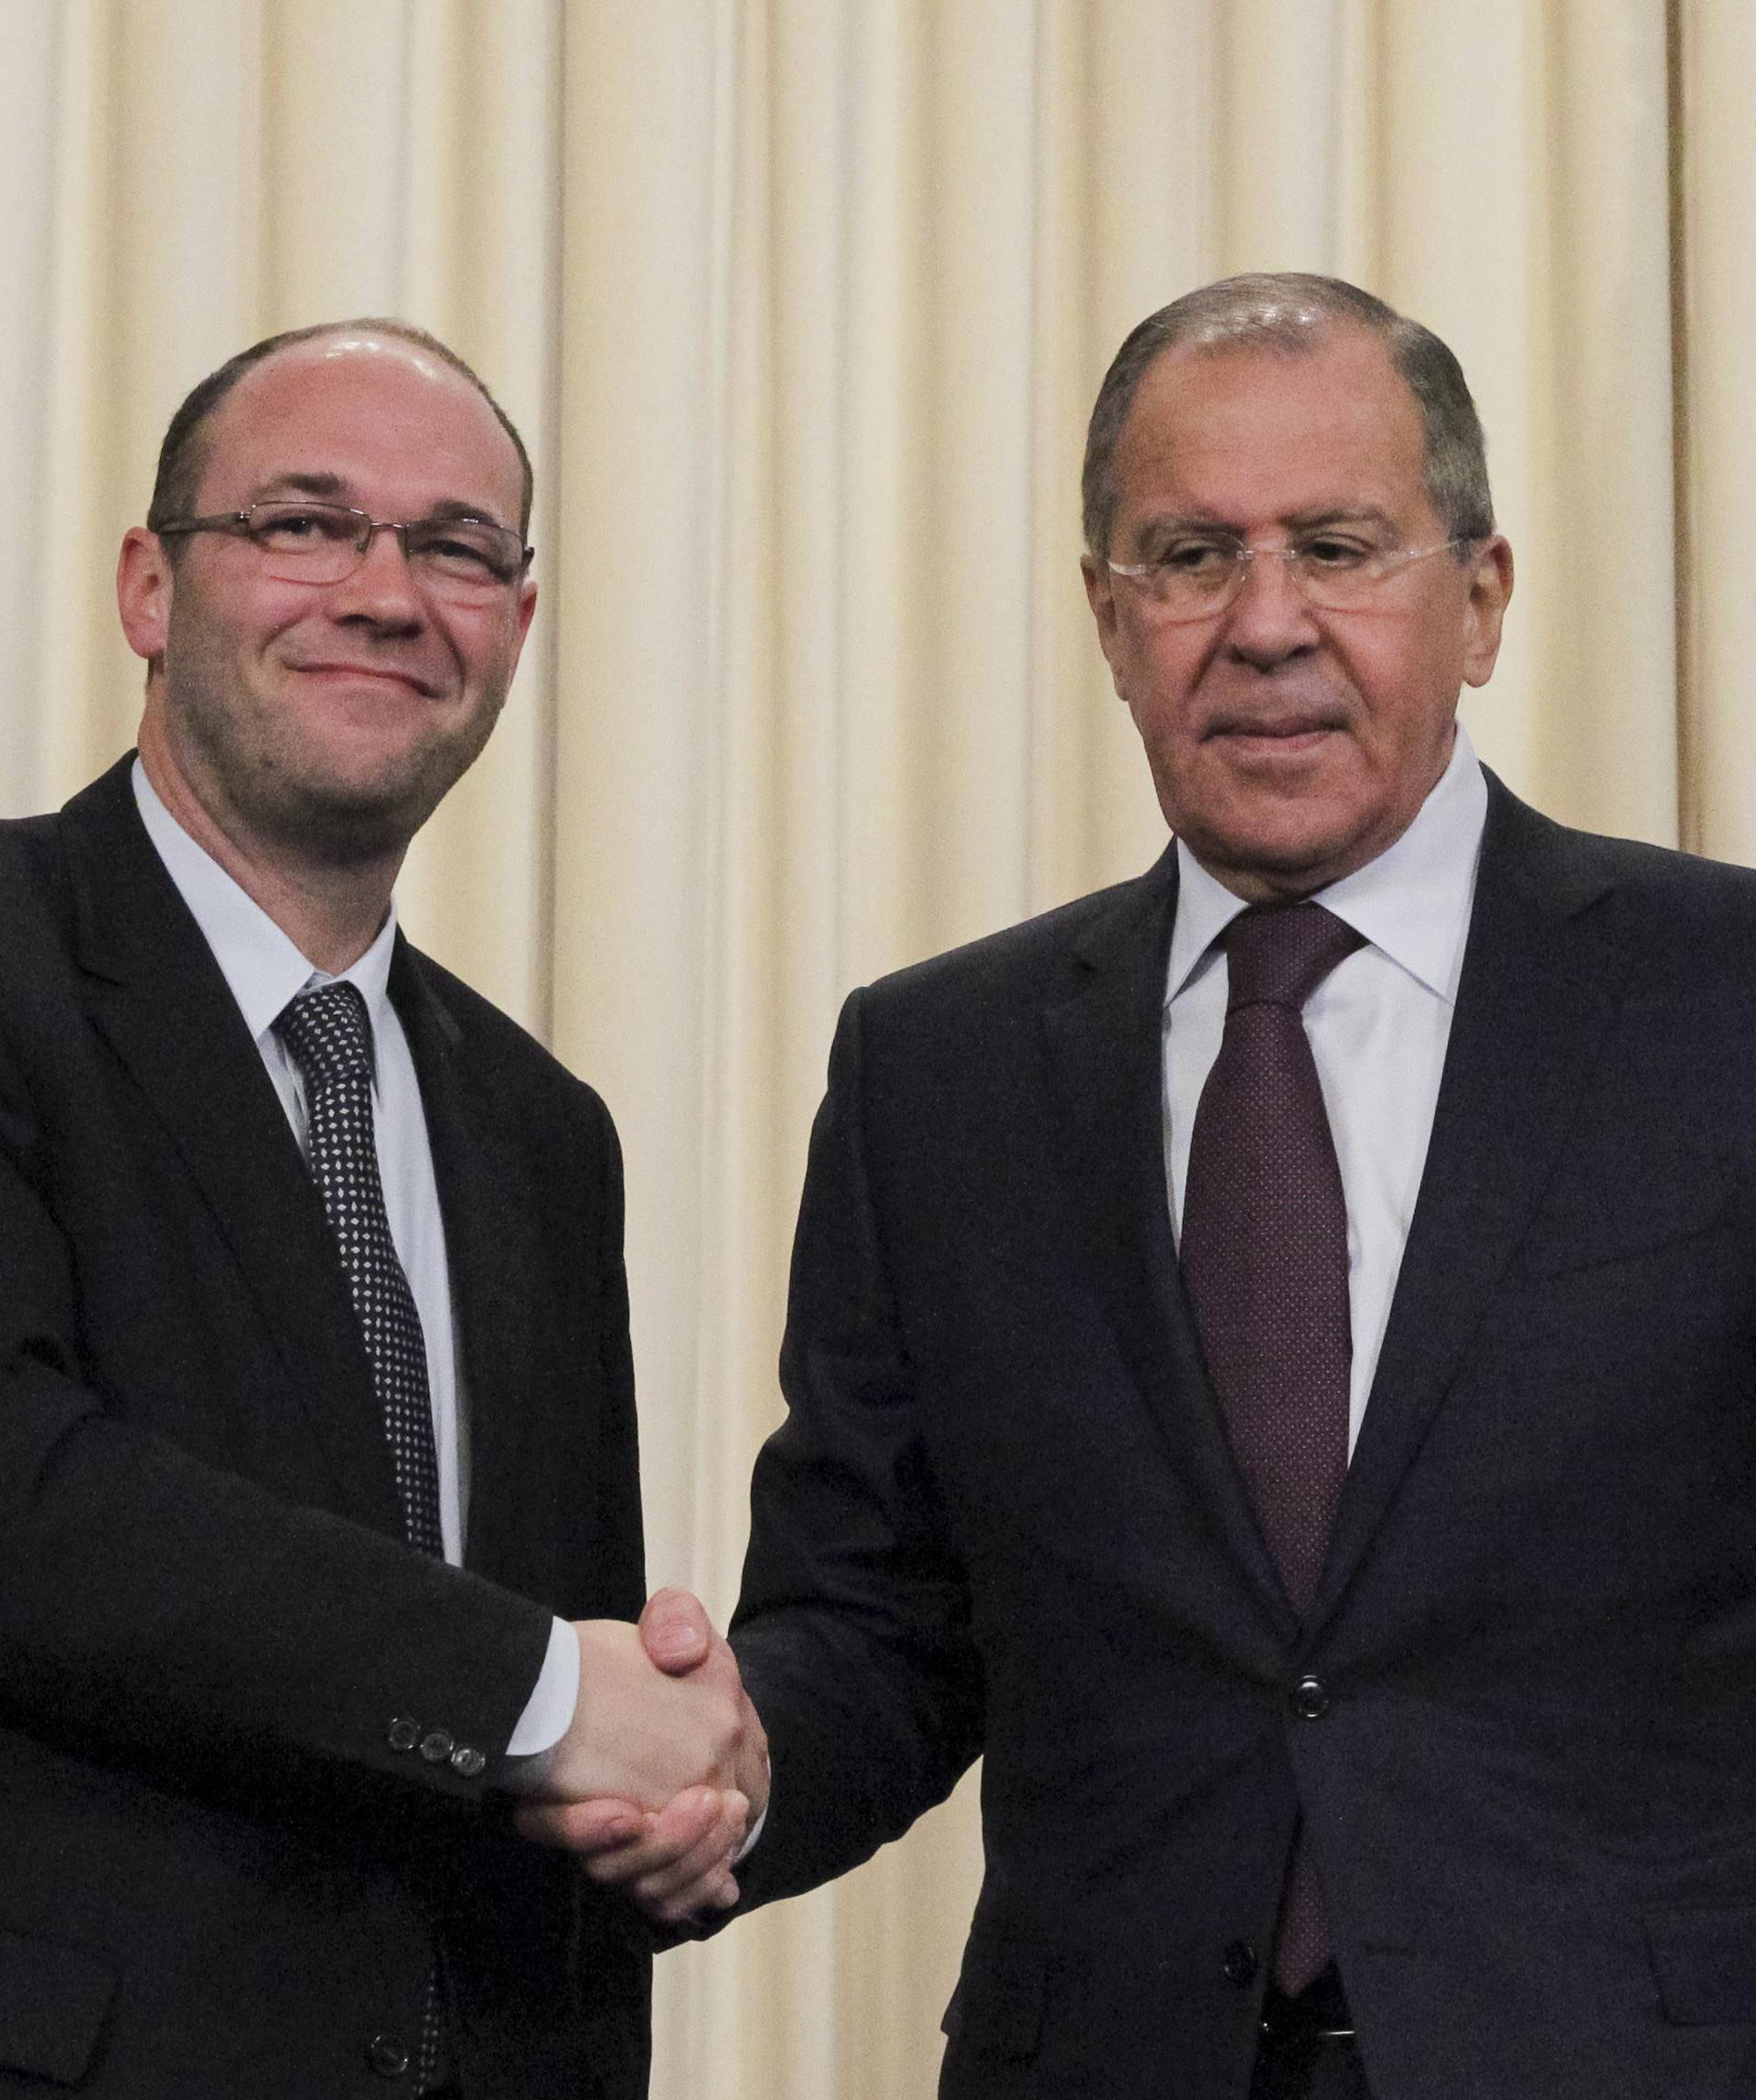 Russian Foreign Minister Sergei Lavrov shakes hands with Croatian Minister of Foreign and European Affairs Davor Ivo Stier during a joint news conference following their meeting in Moscow